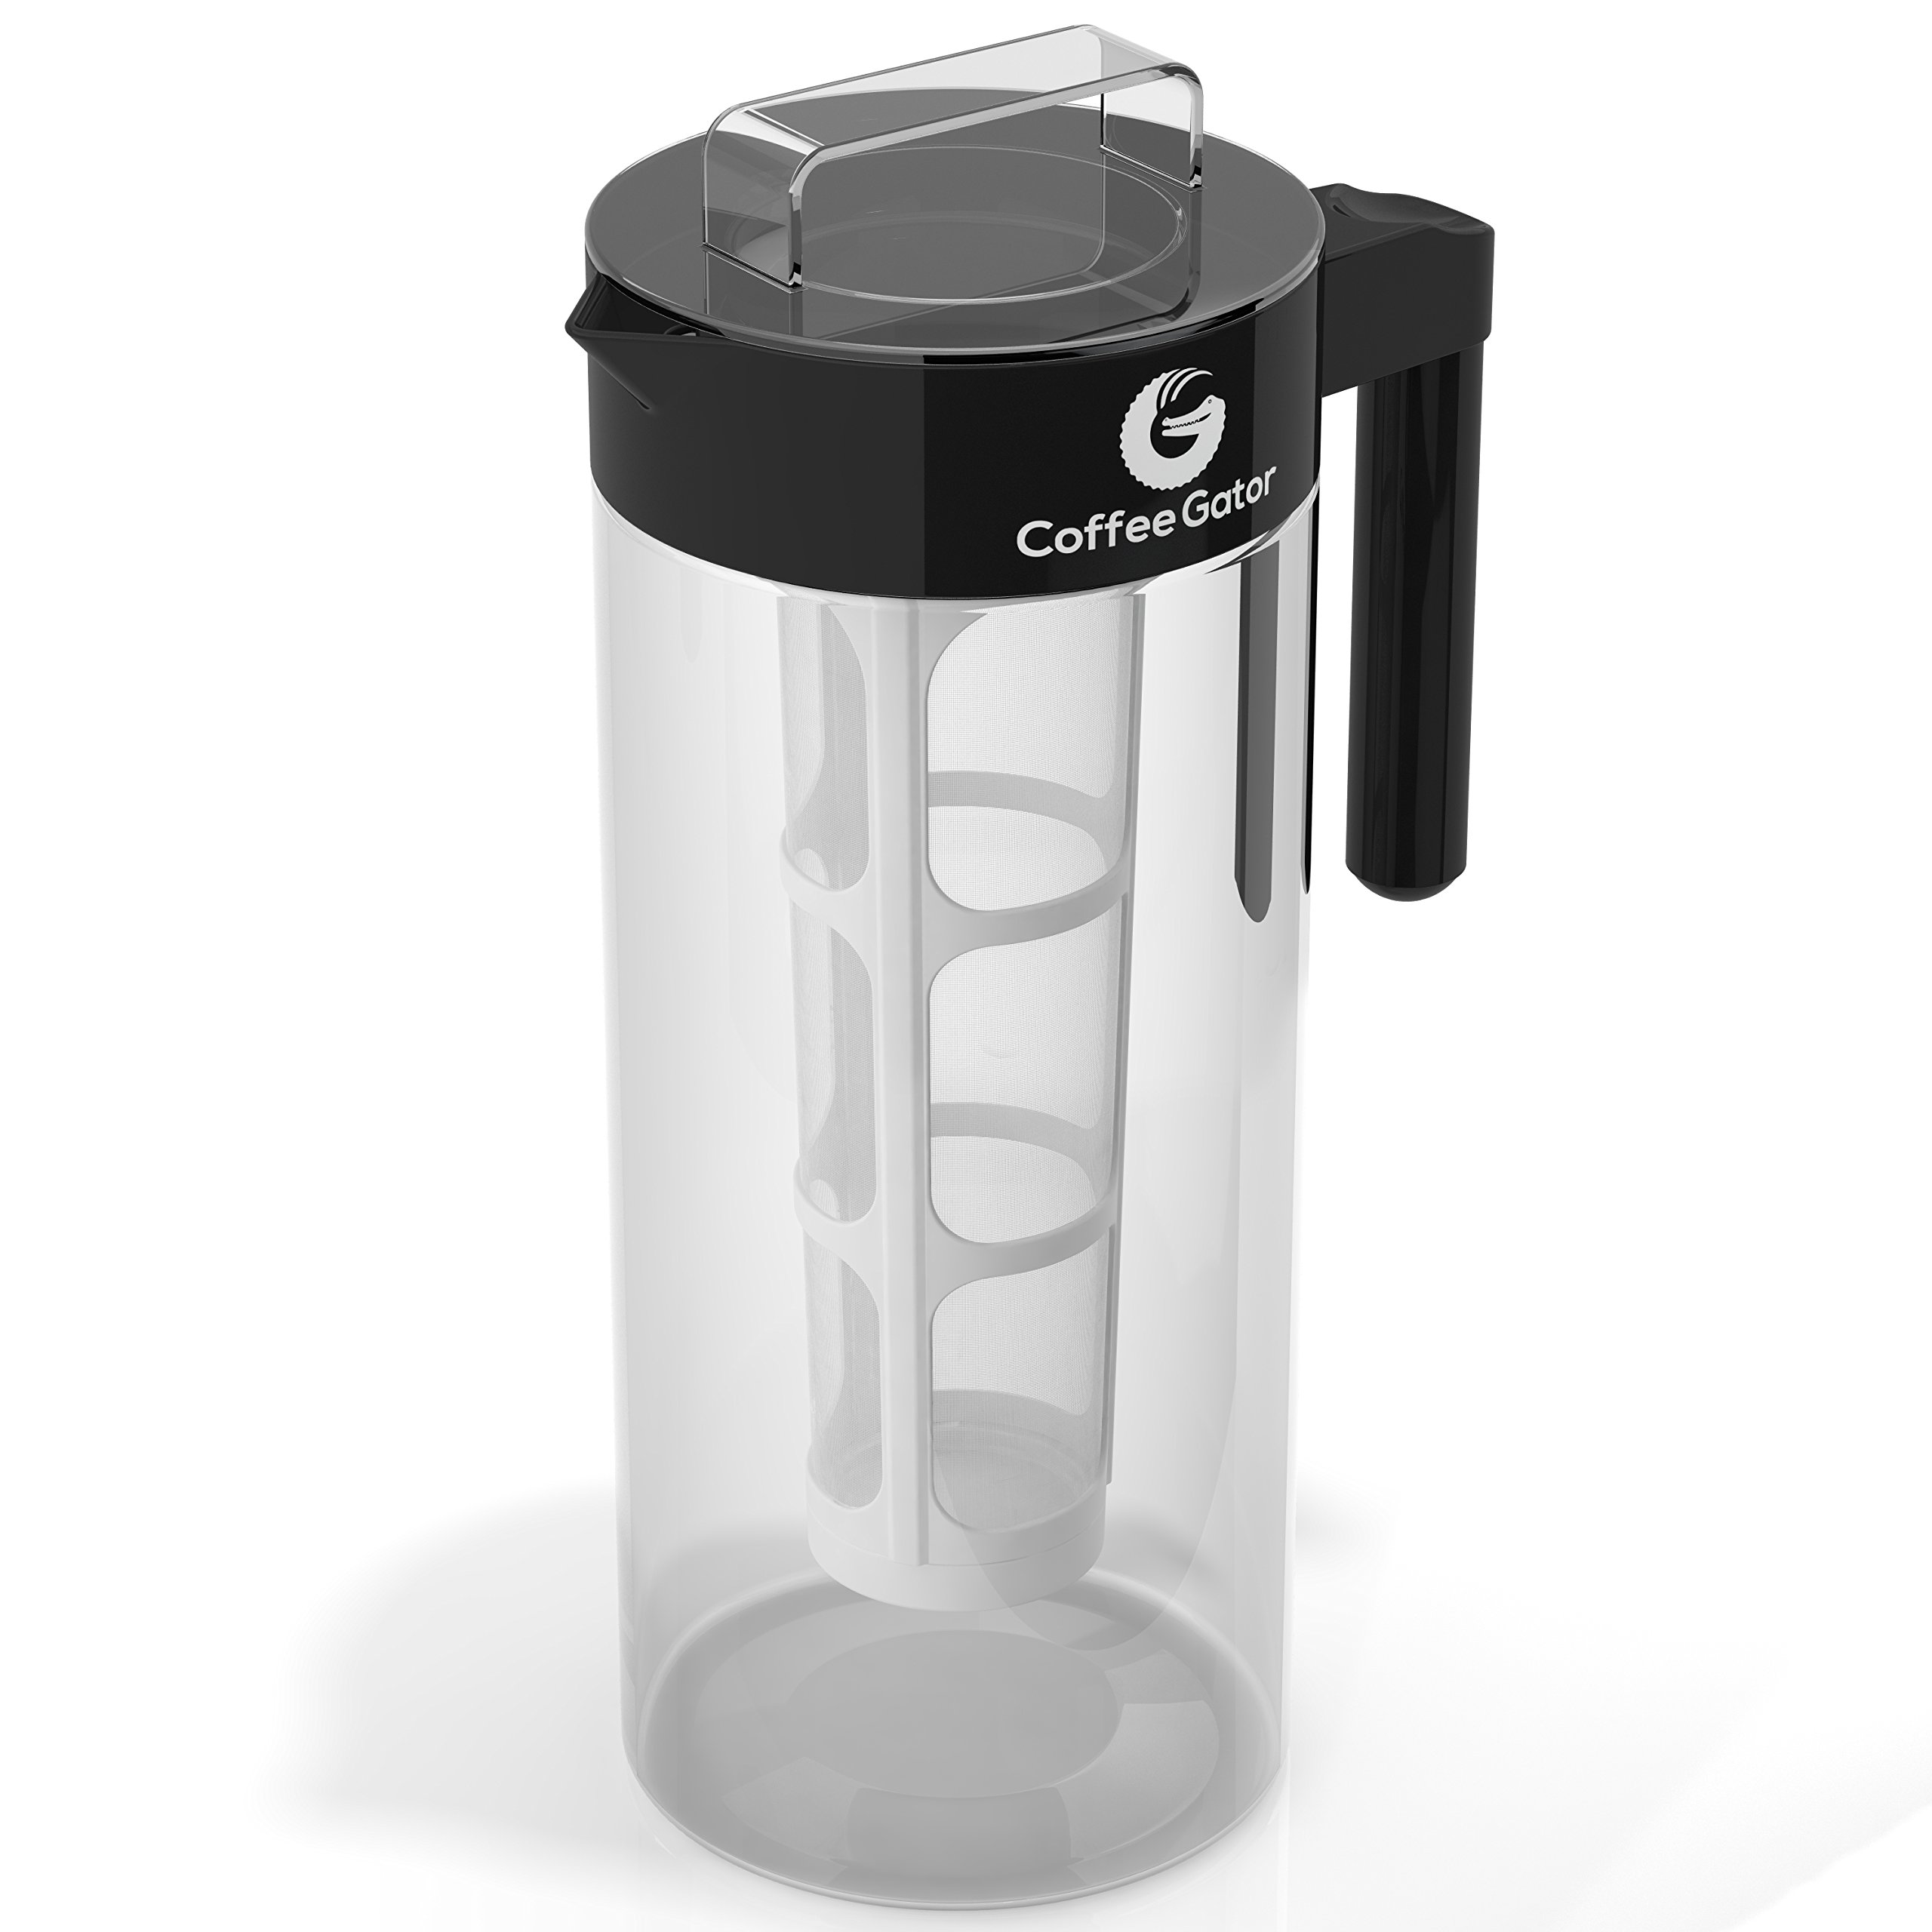 Coffee-Gator-Cold-Brew-Coffee-Maker-BPA-Free-Filter-and-Glass-Carafe-Brewing-Kit-with-Stainless-Steel-Measuring-Scoop-and-Collapsible-Loading-Funnel-Black-14-Litre